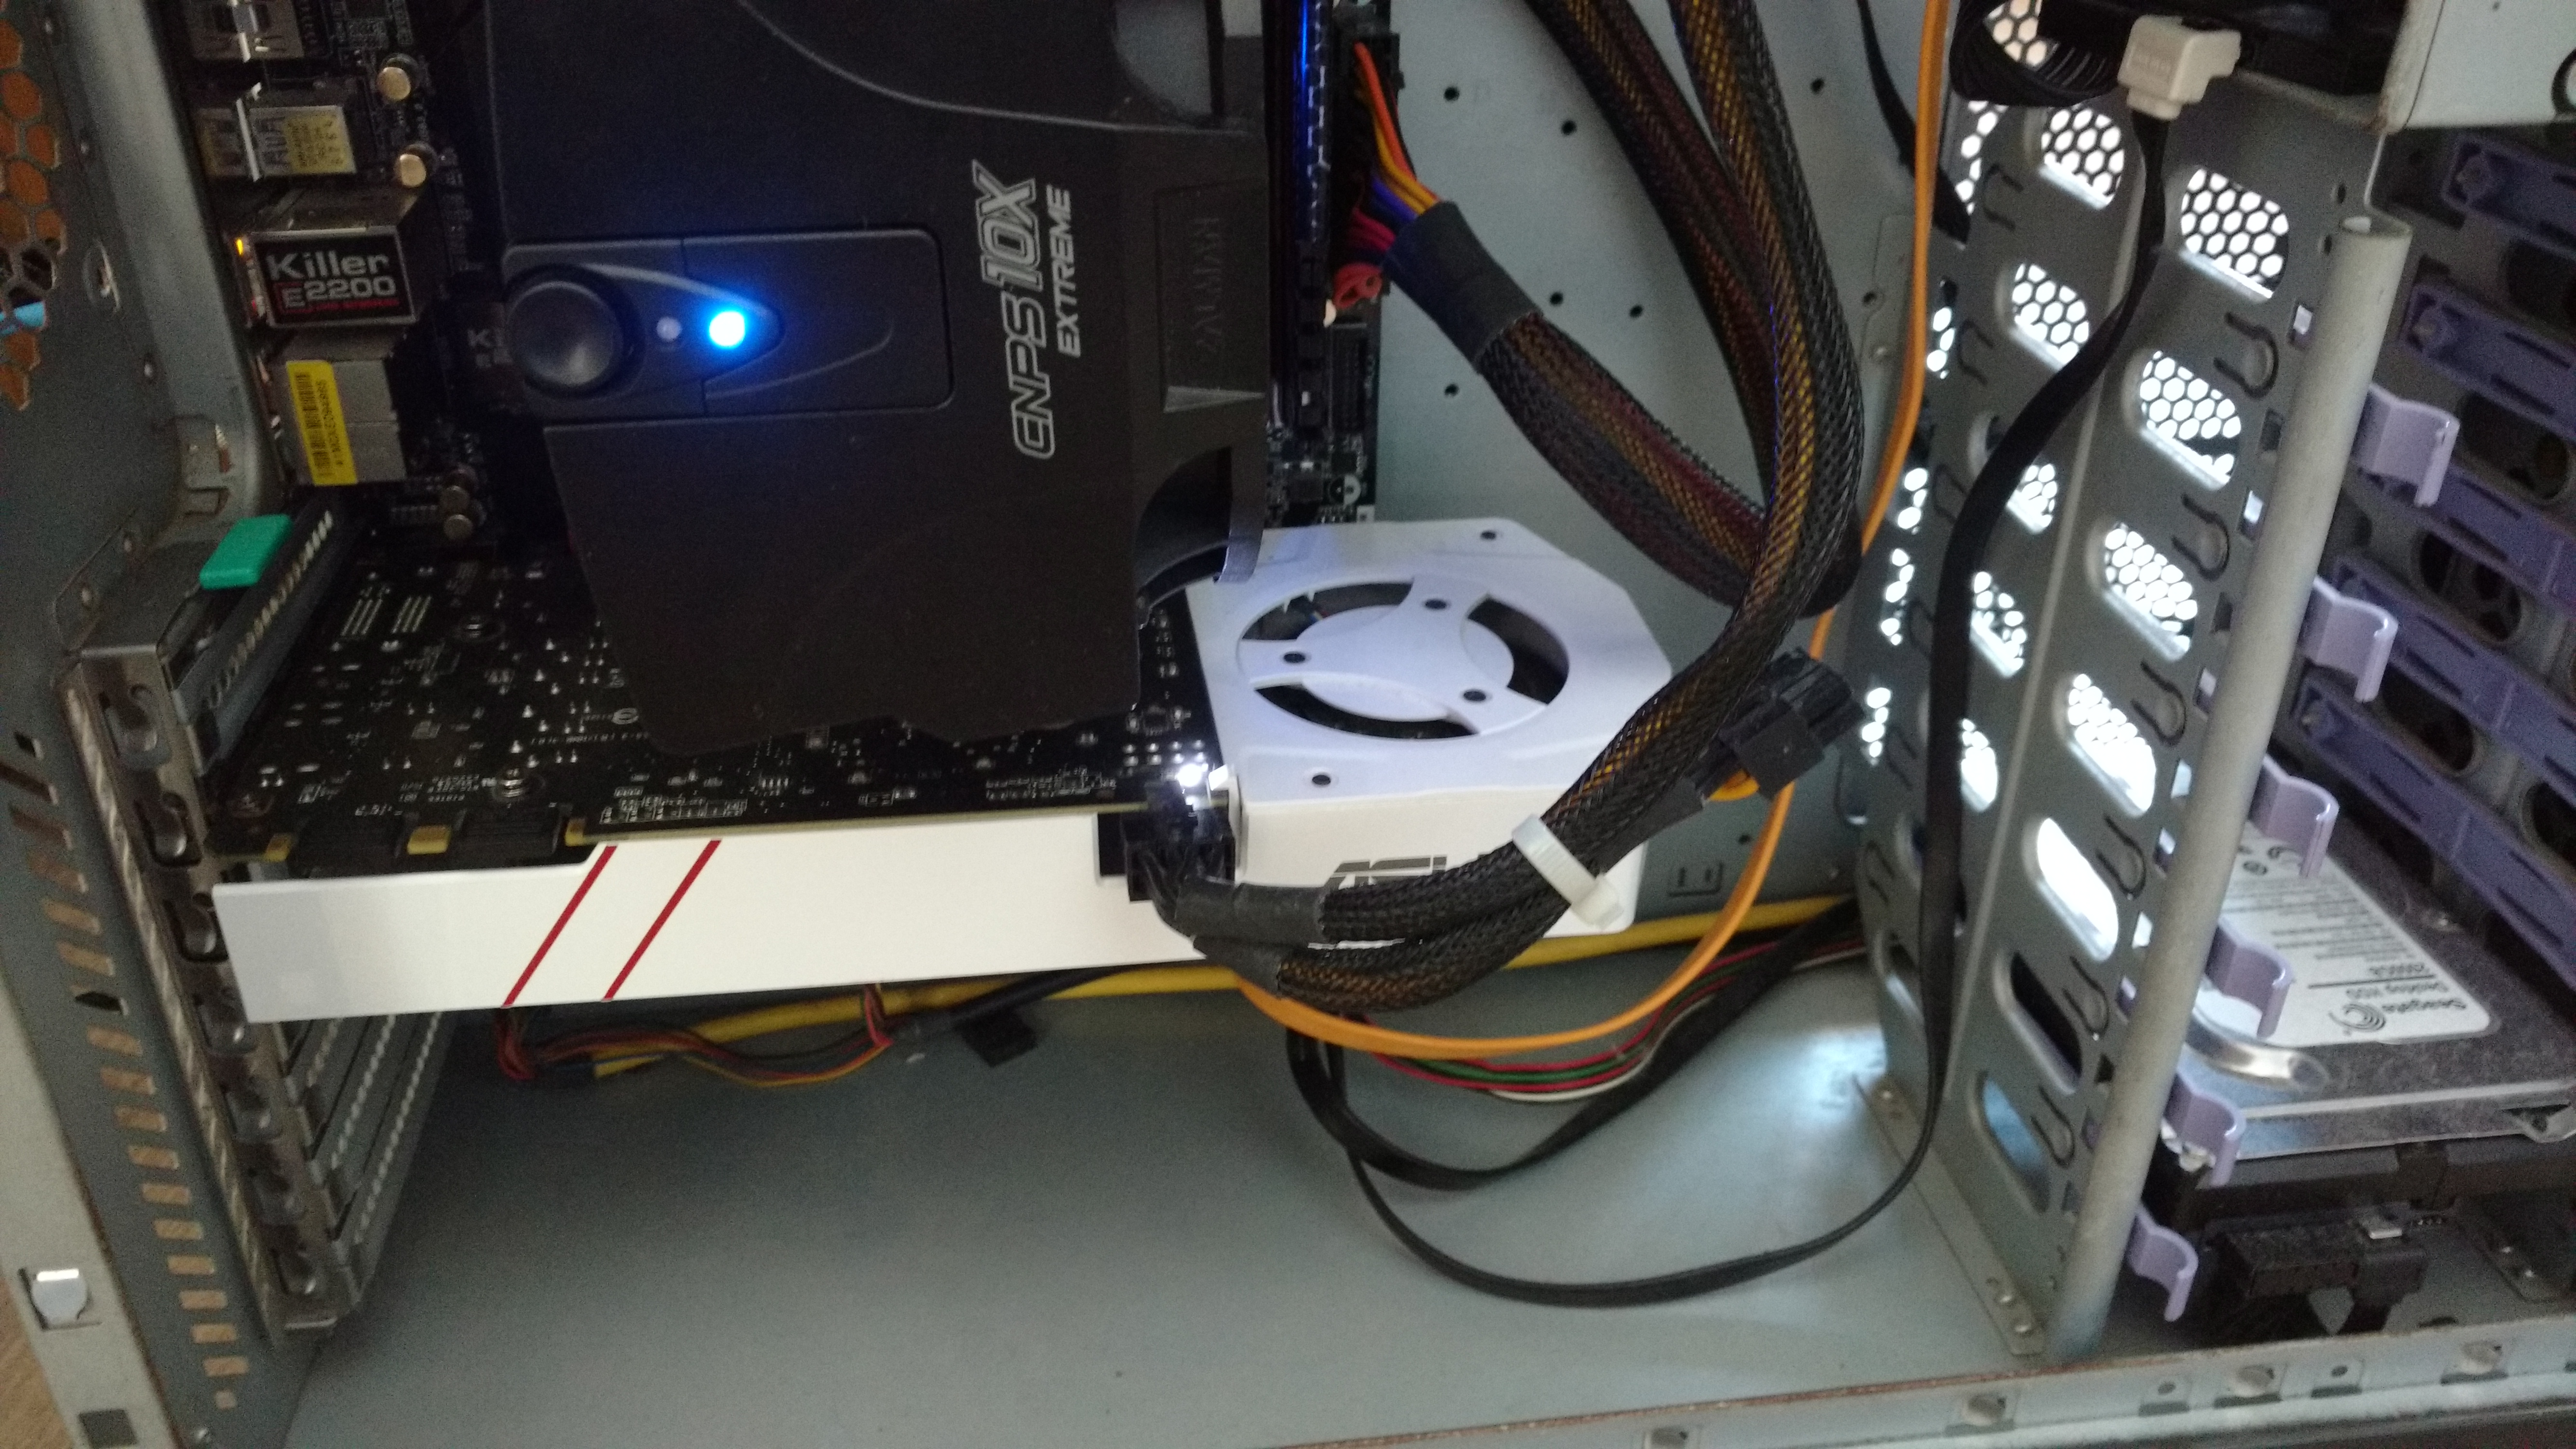 Which graphics card? New GTX 1060, new RX 480 or used GTX